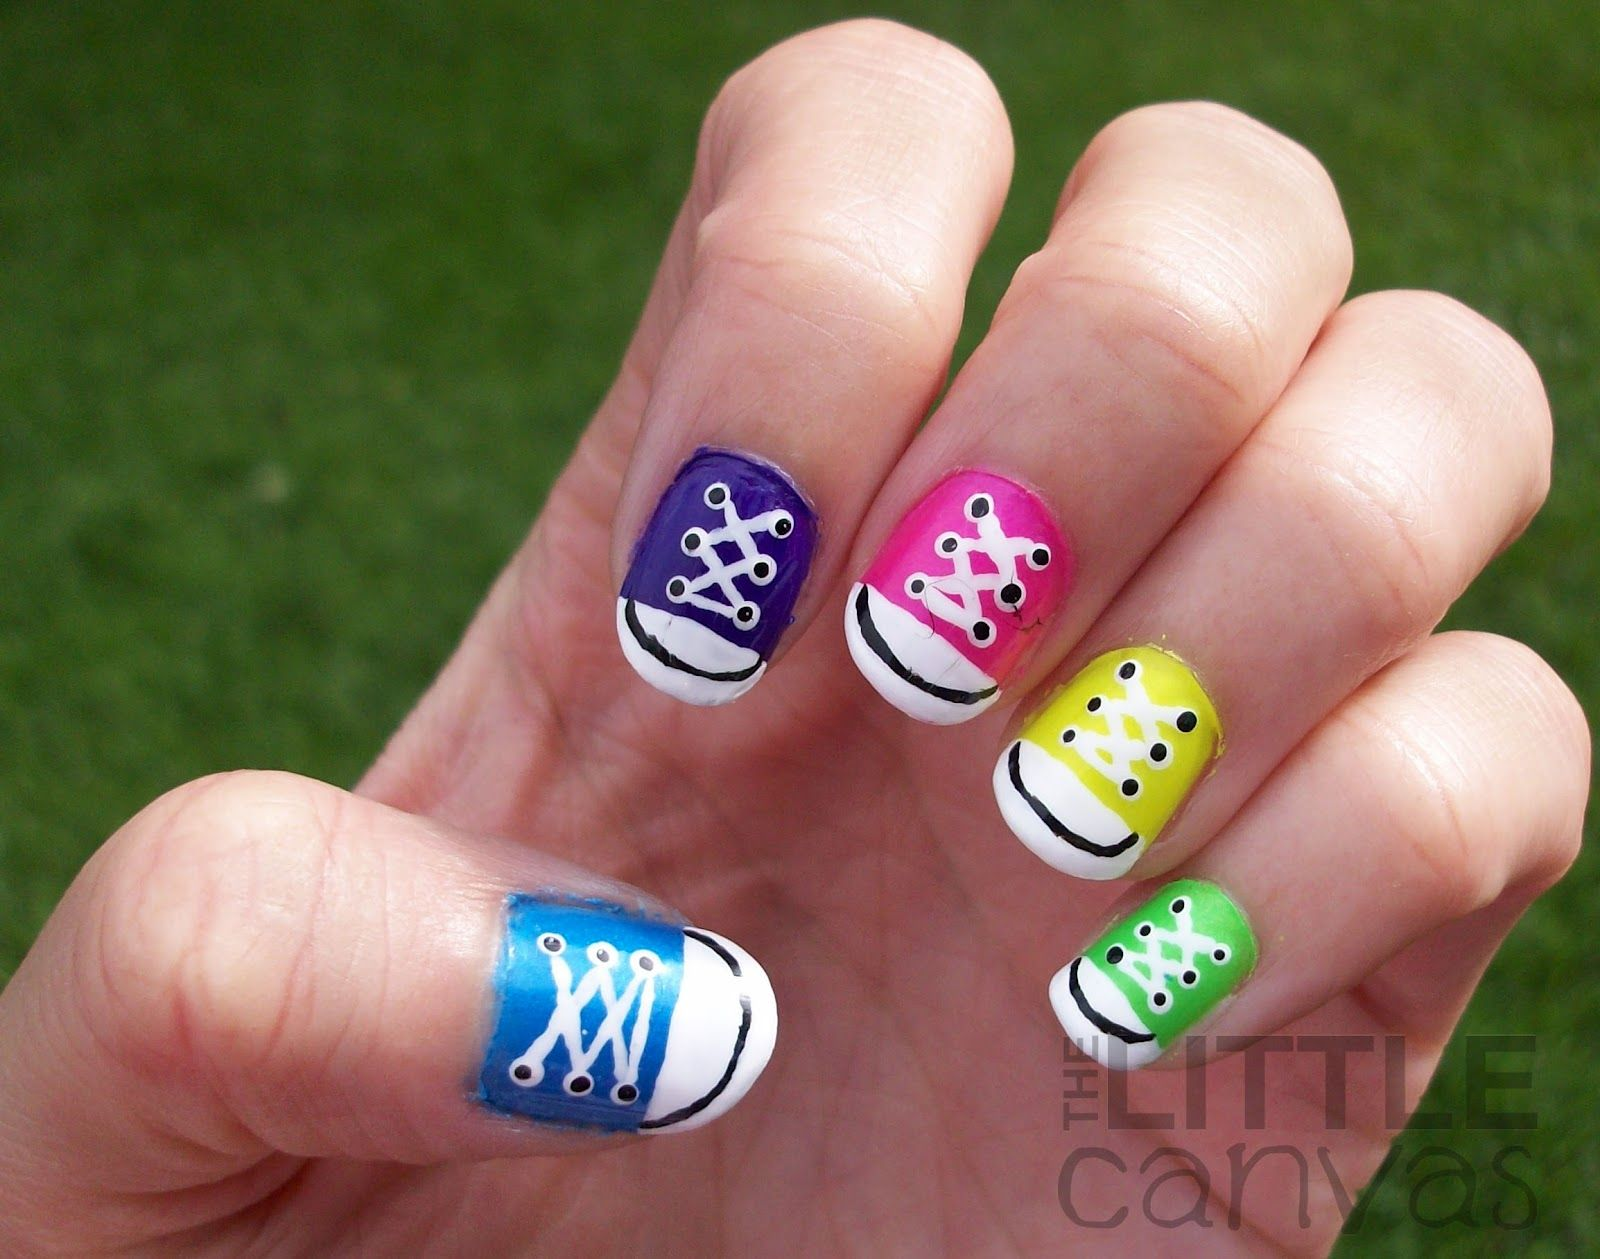 The Little Canvas: 31 Day Challenge - Day 7 - Rainbow Nails ...